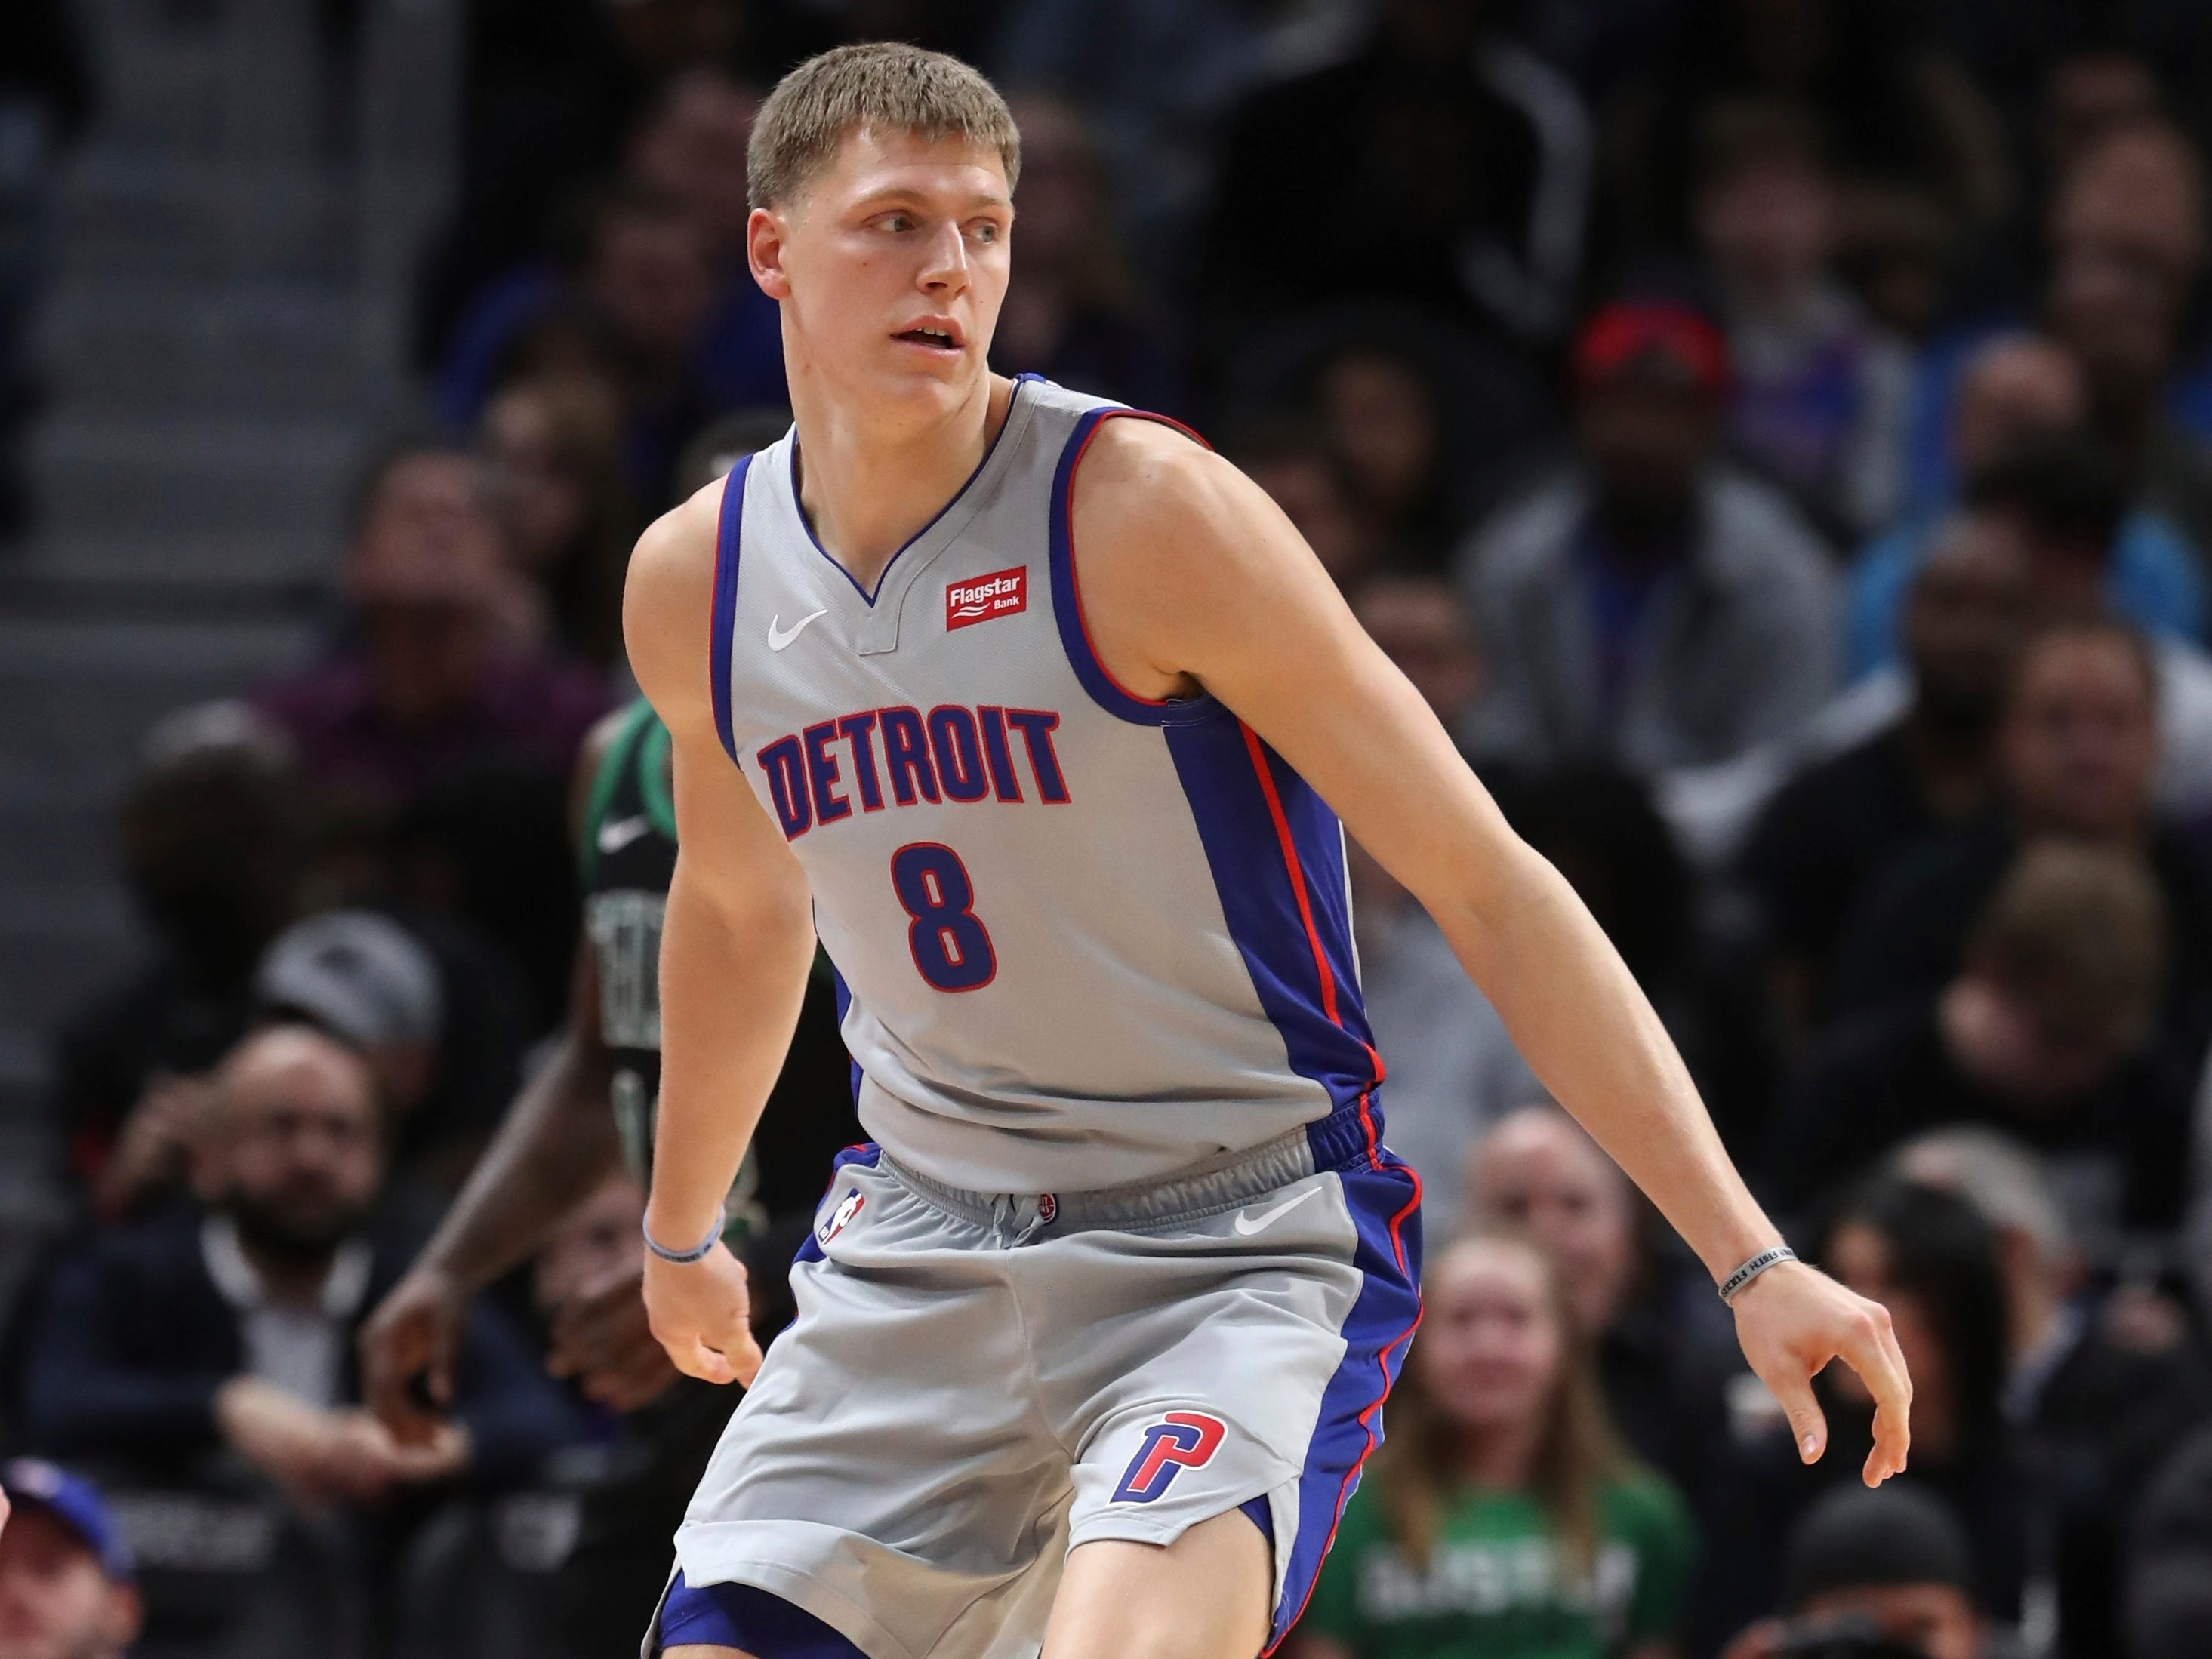 Henry Ellenson -- Stats: 6 pts., 4.5 rebs., 50% 3FG in 2 games. Age: 22. The writing was on the wall when the team declined his option for next year. He'll become an unrestricted free agent and look potentially to start over somewhere else. He's been inactive for most of the games this season and an ankle injury sidelined him even when he got a shot. Grade: Incomplete.